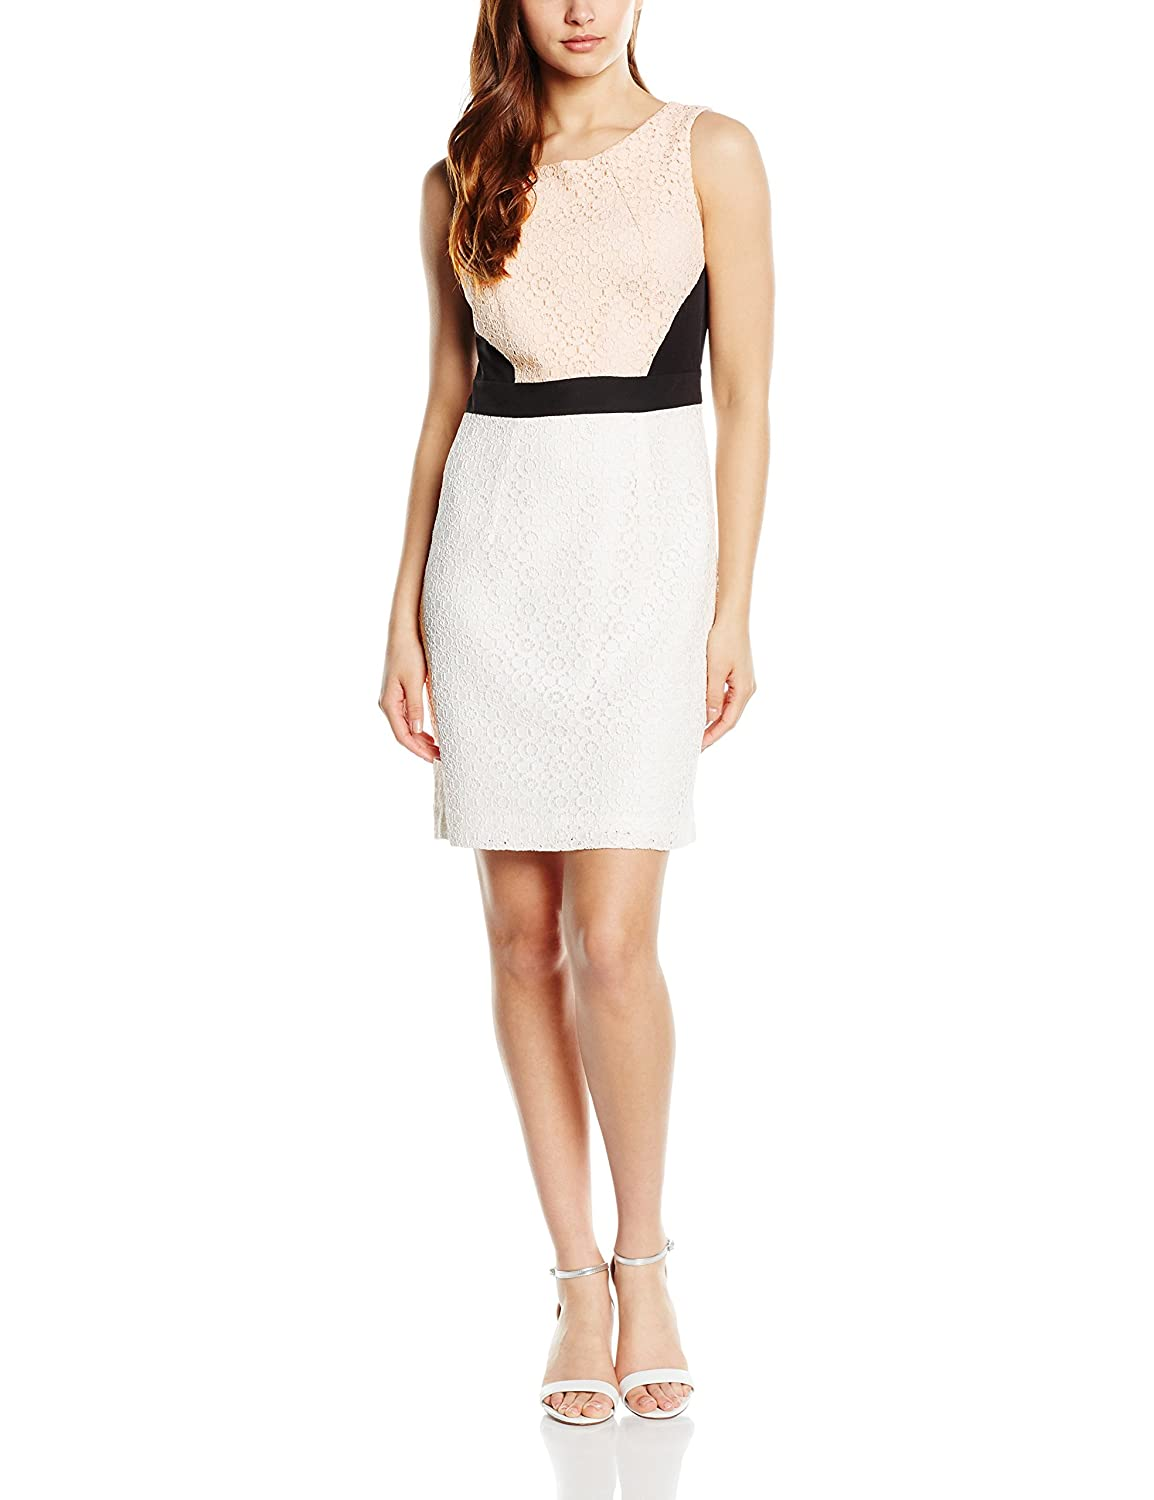 Wolf & Whistle Women's Lace Colour Block Dress